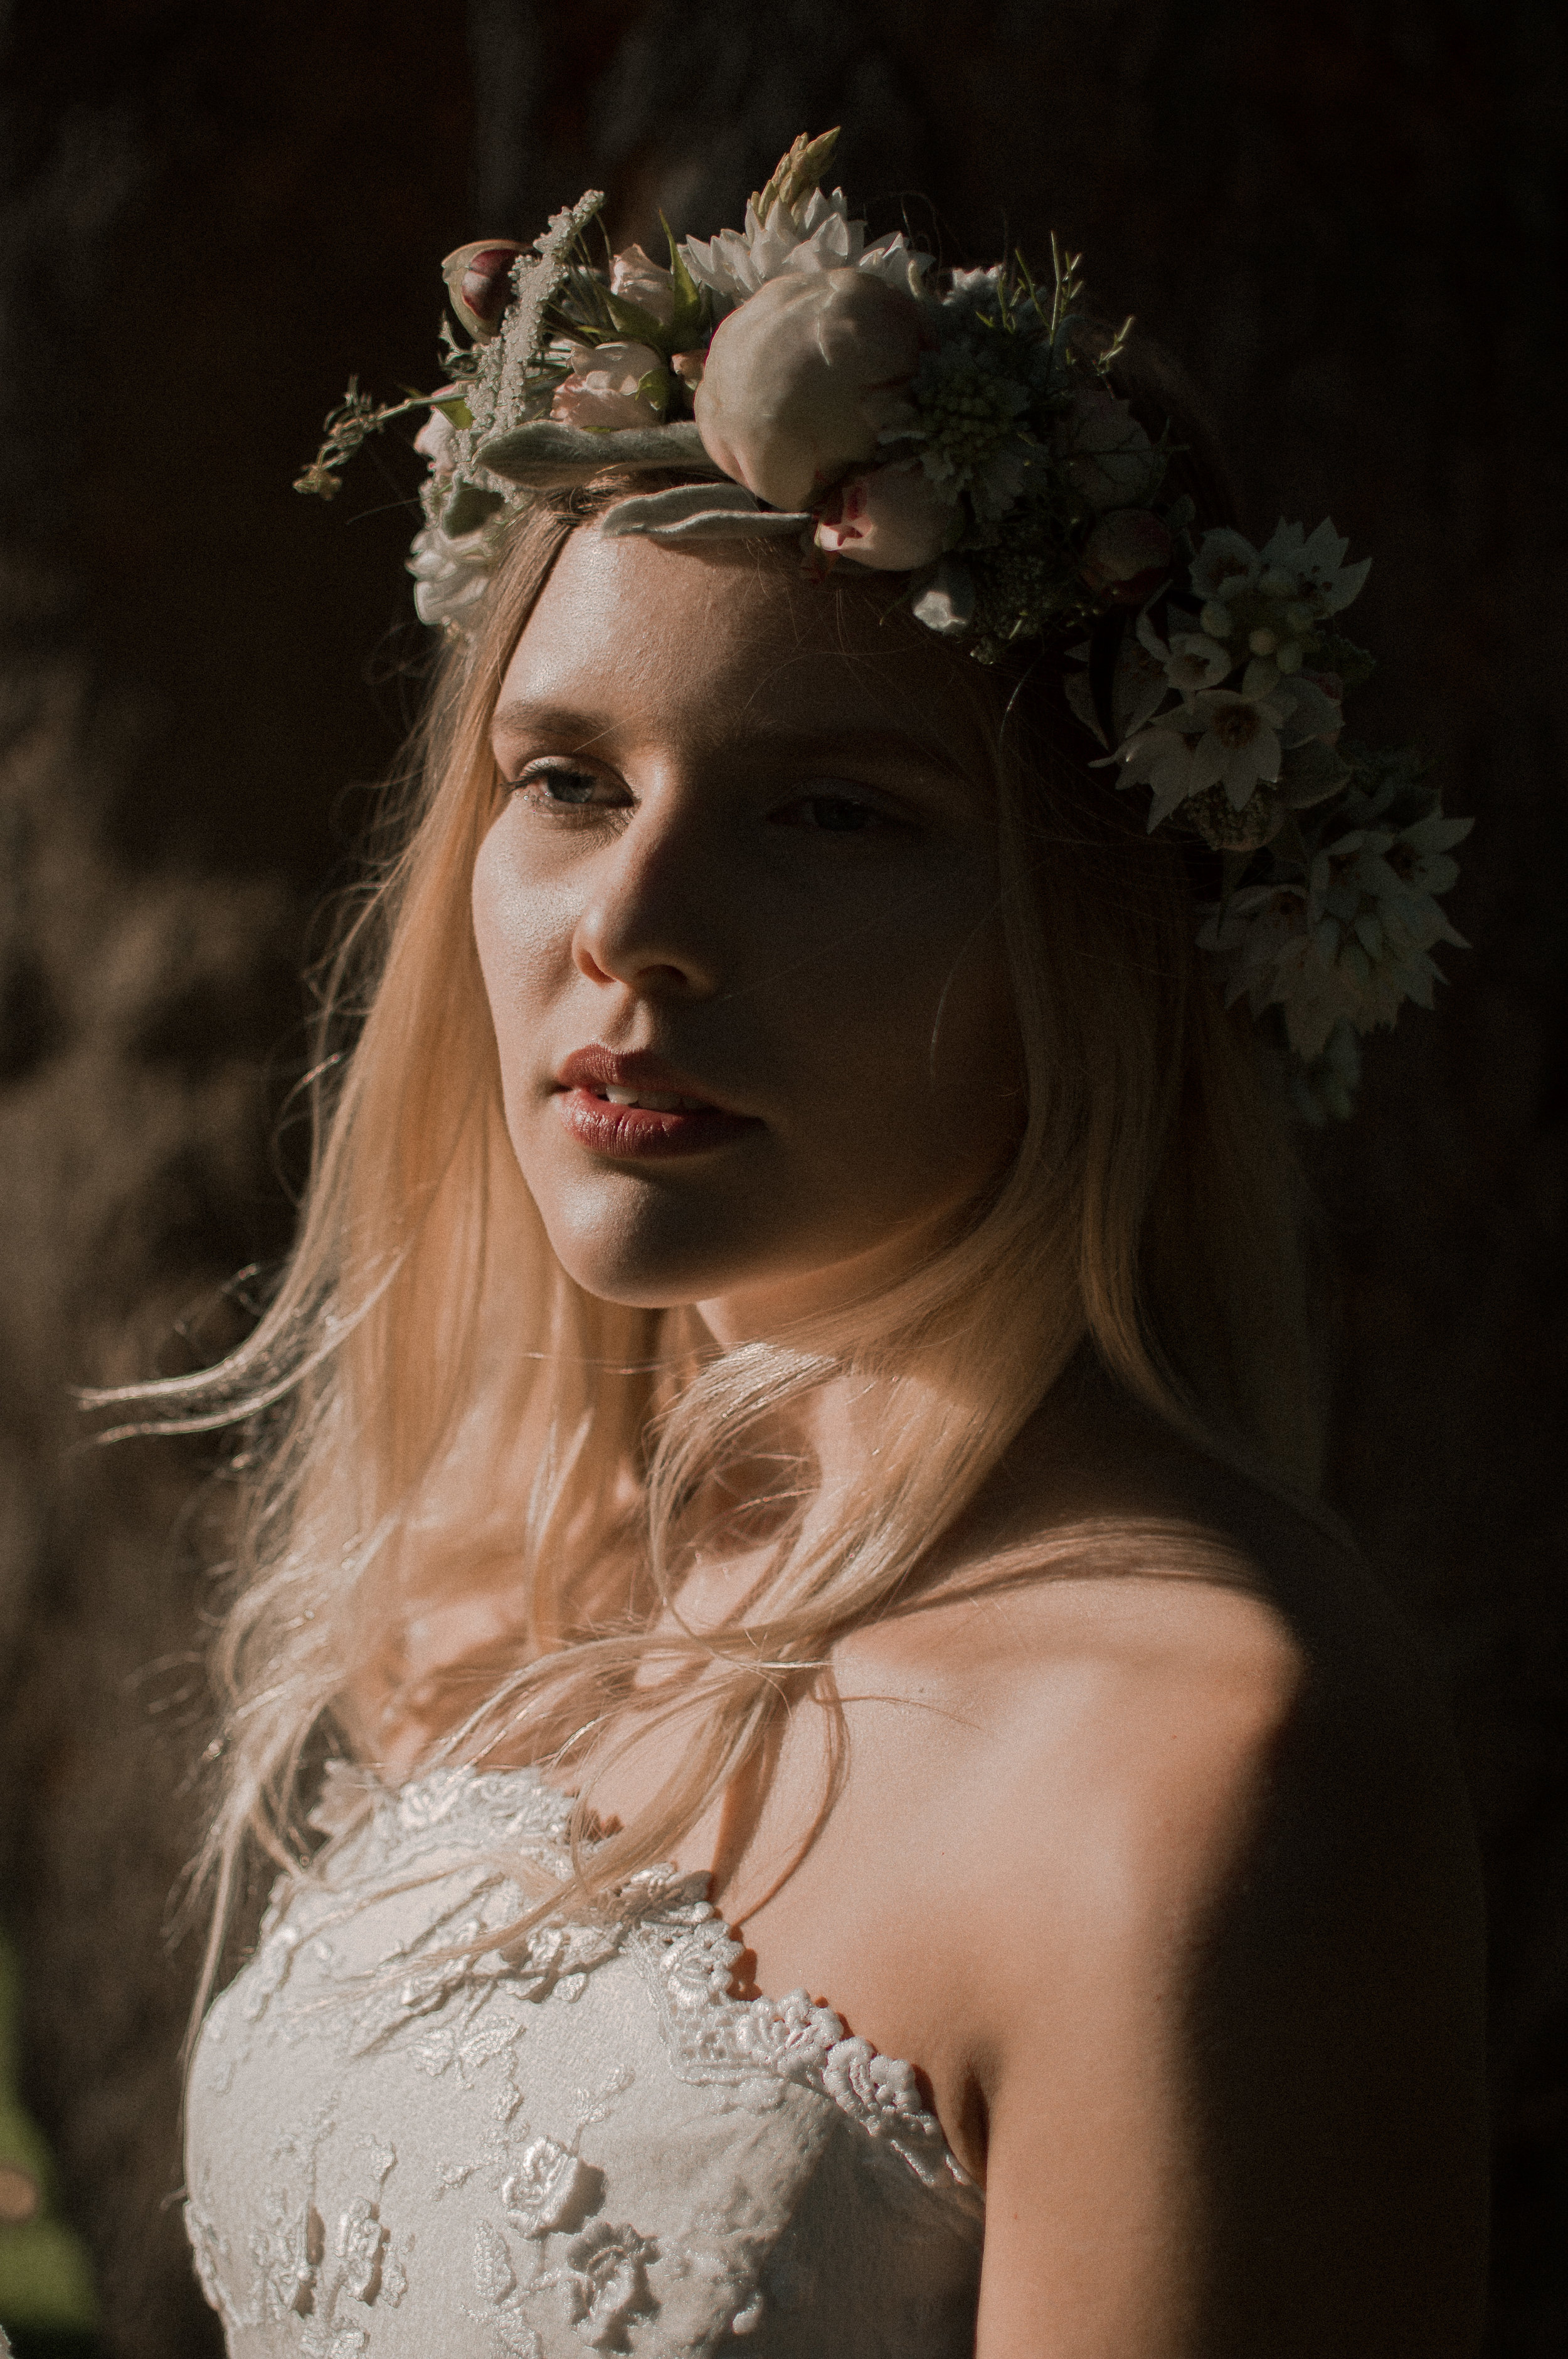 Zoe with native flower crown